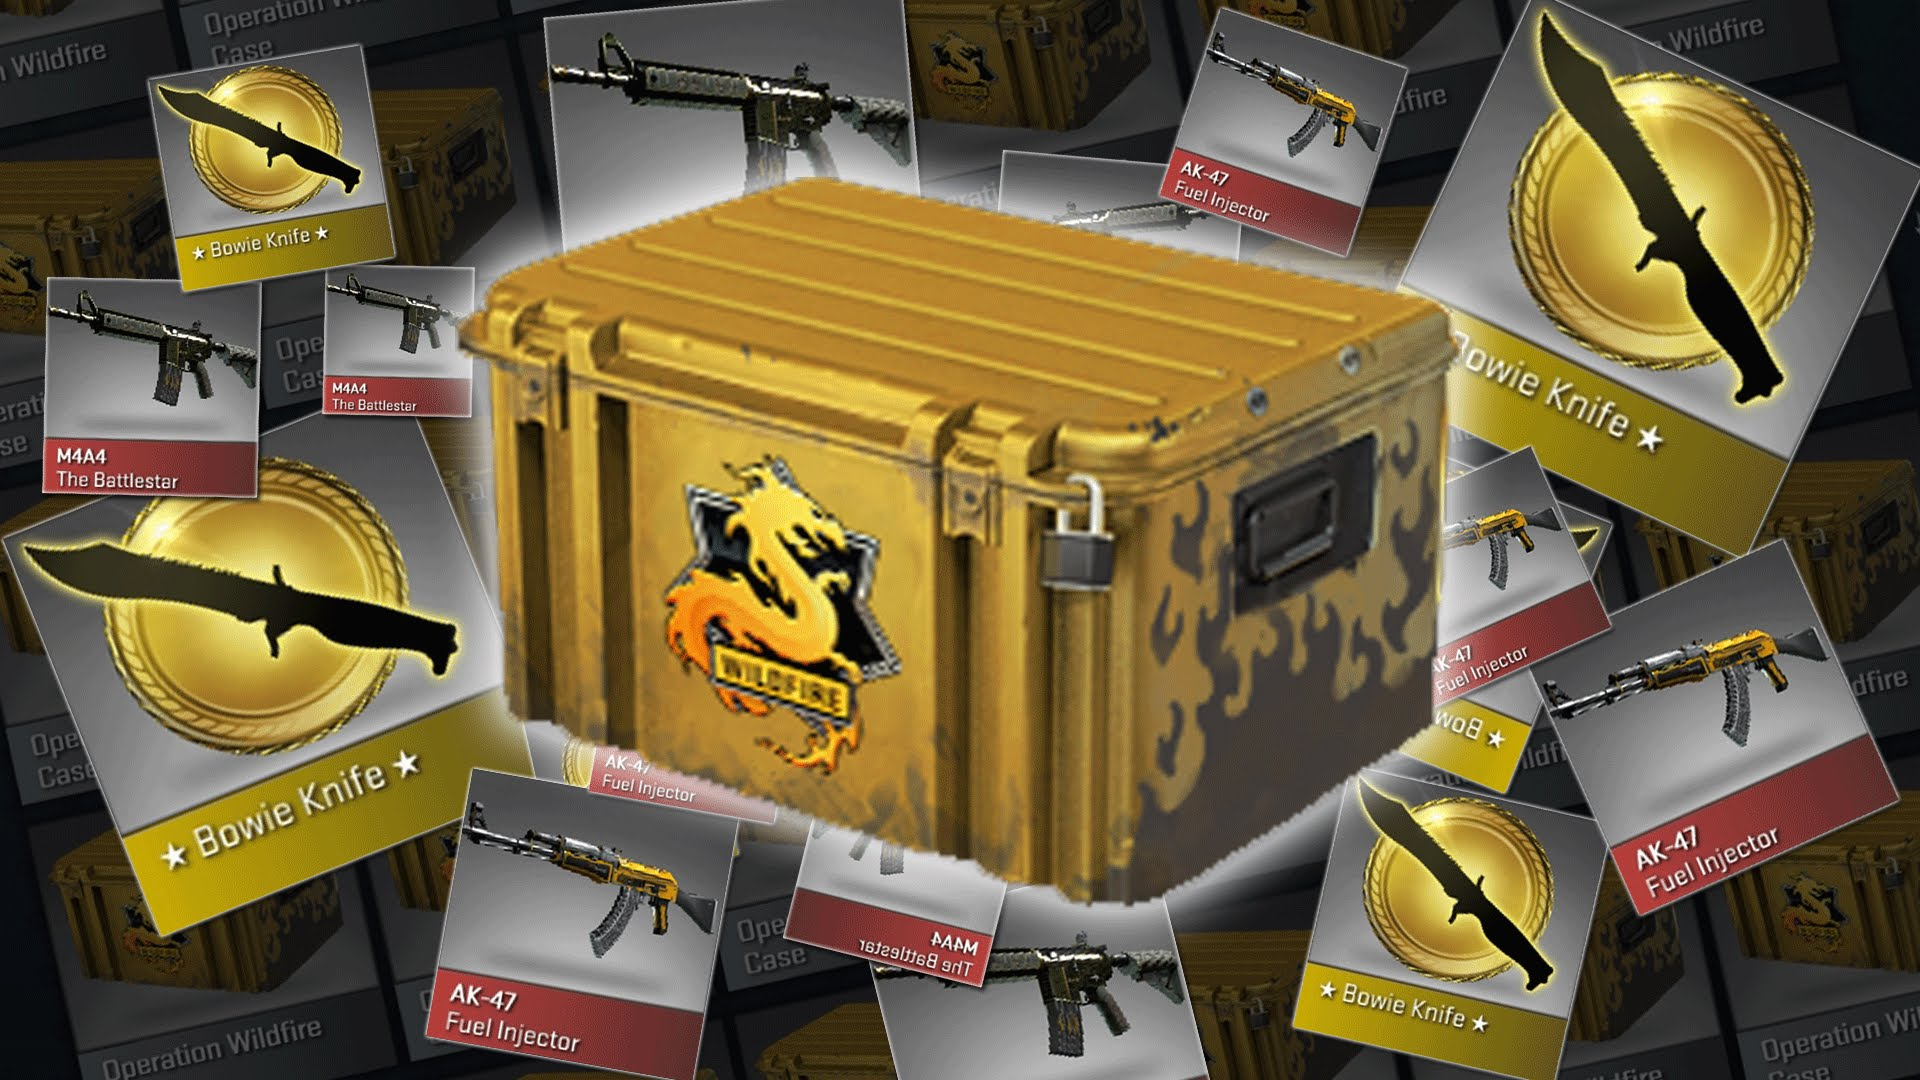 Photo of CS: GO case opening websites are a scam according to report